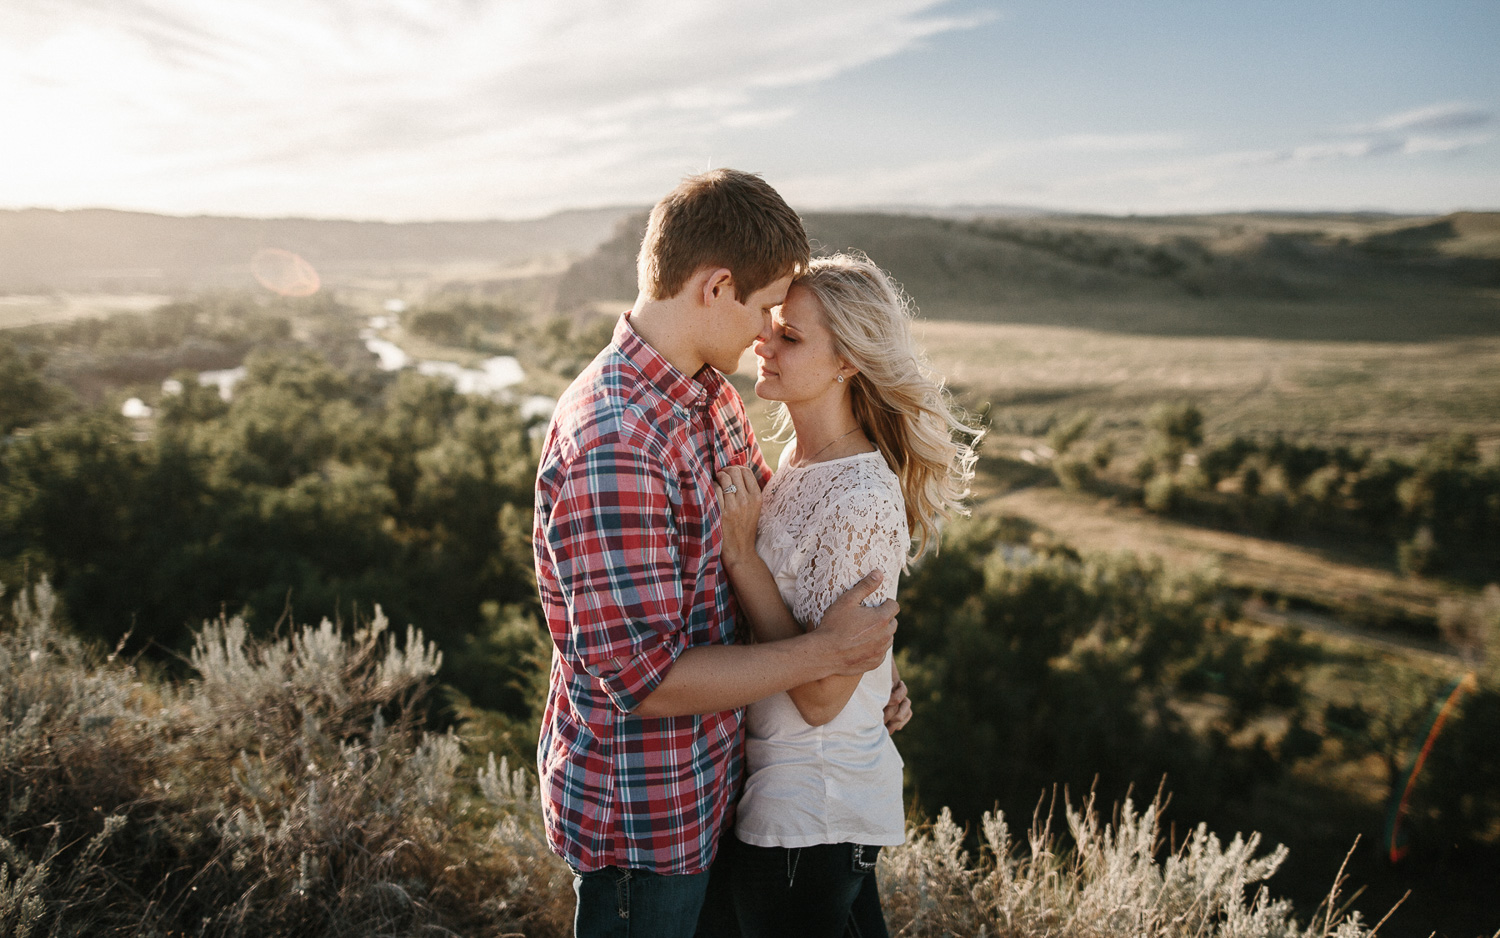 SiouxFalls_BlackHills_Adventure_Engagement_Wedding_Photographer_14.jpg